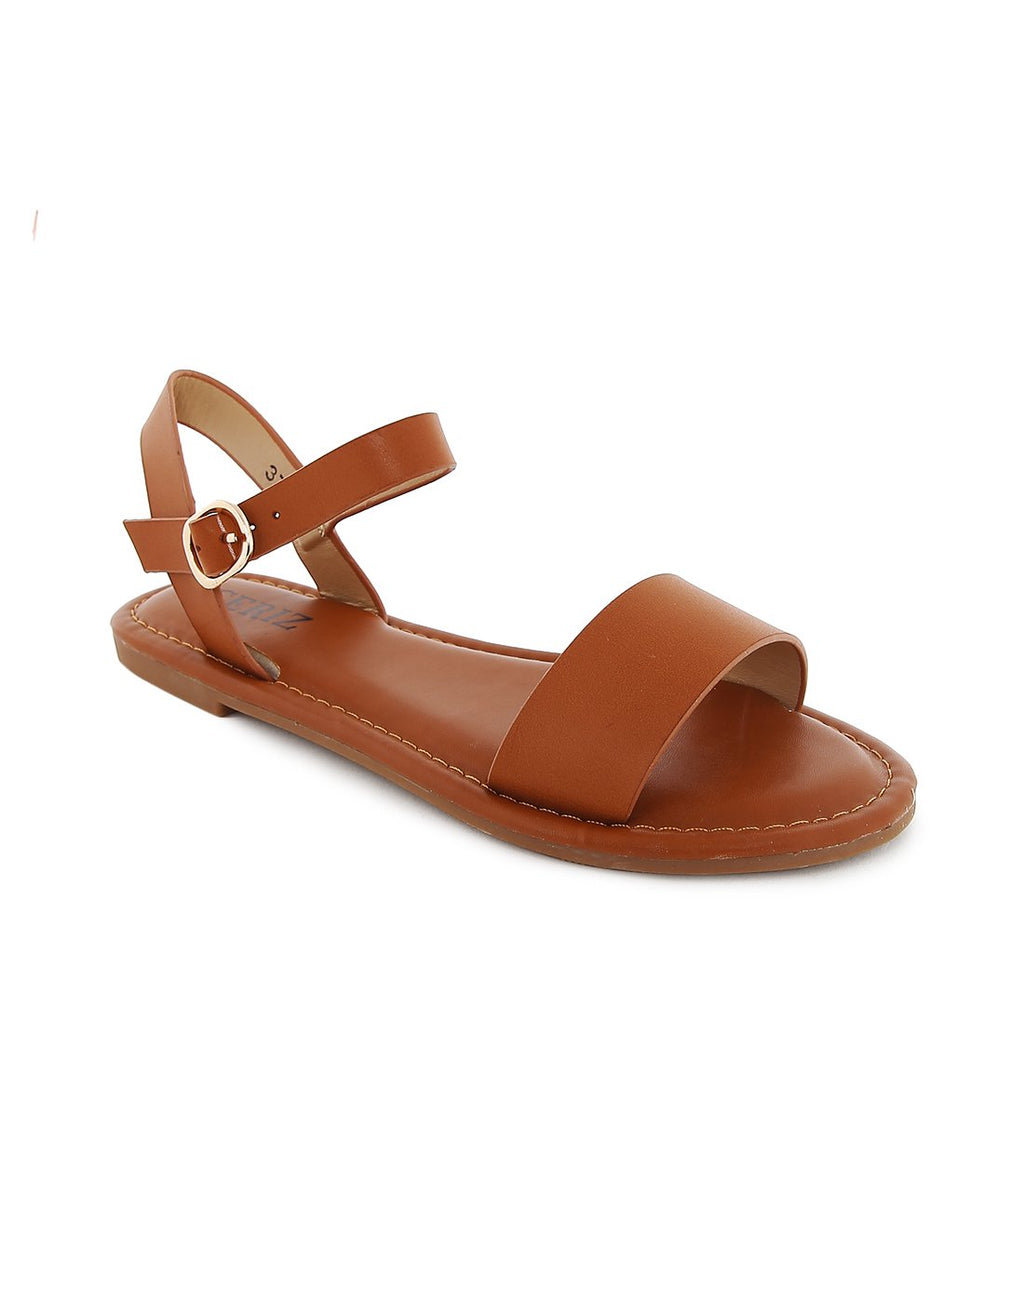 Midas Basic Tan Sandals